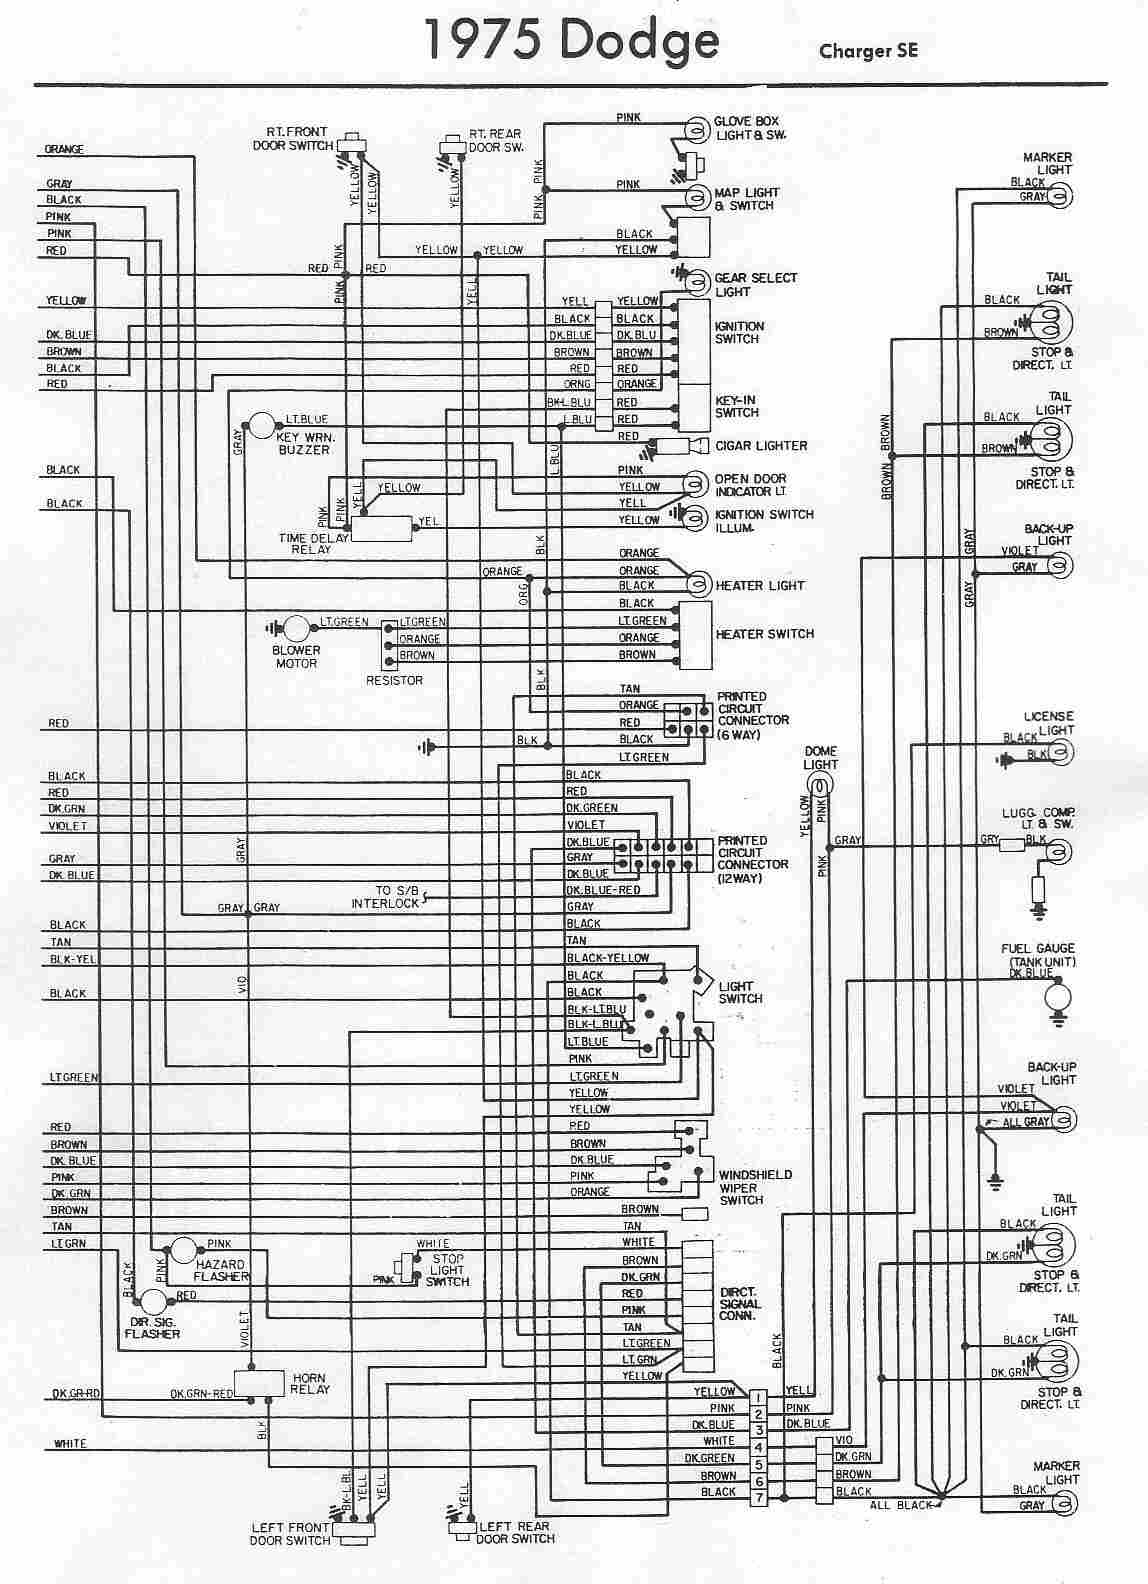 electrical wiring diagram of 1975 dodge charger?t=1508404771 dodge car manuals, wiring diagrams pdf & fault codes 2014 dodge caravan wiring diagram at crackthecode.co